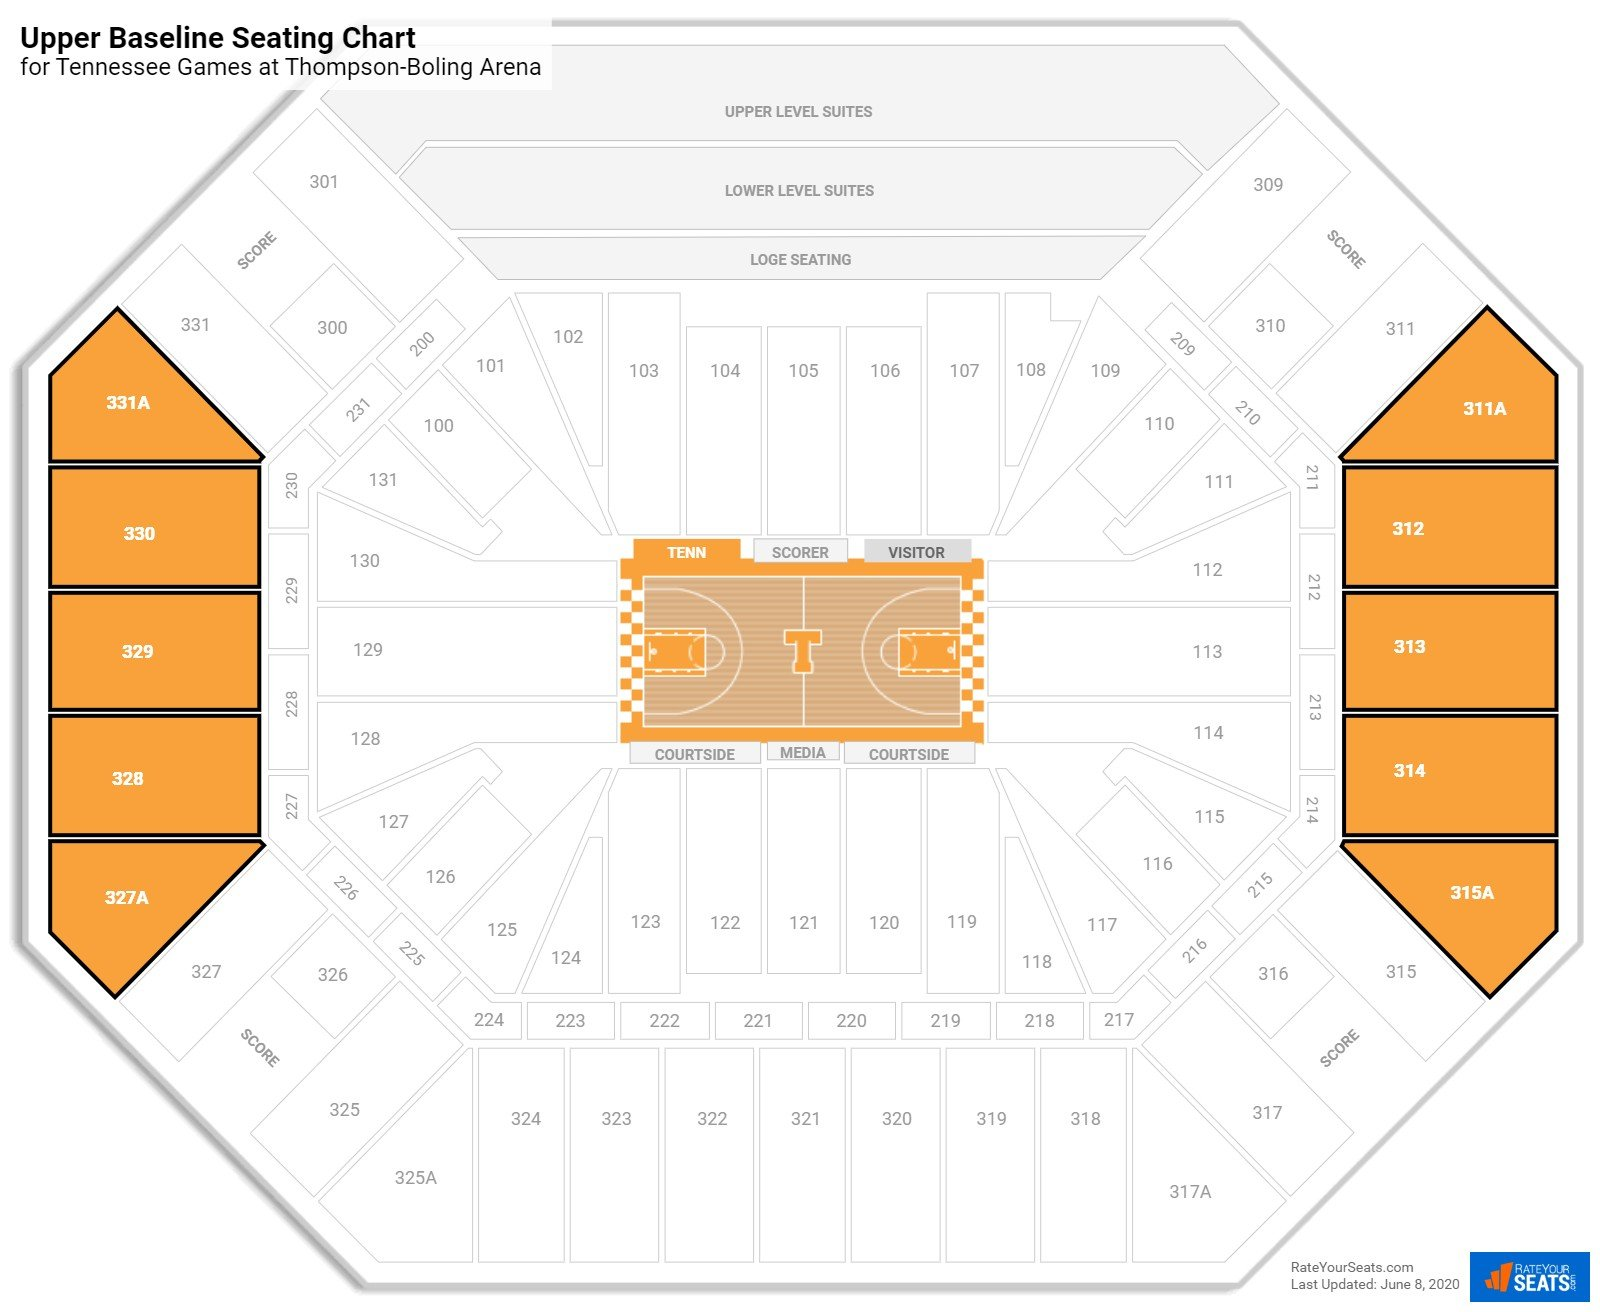 Thompson Boling Arena Upper Baseline Seating Chart